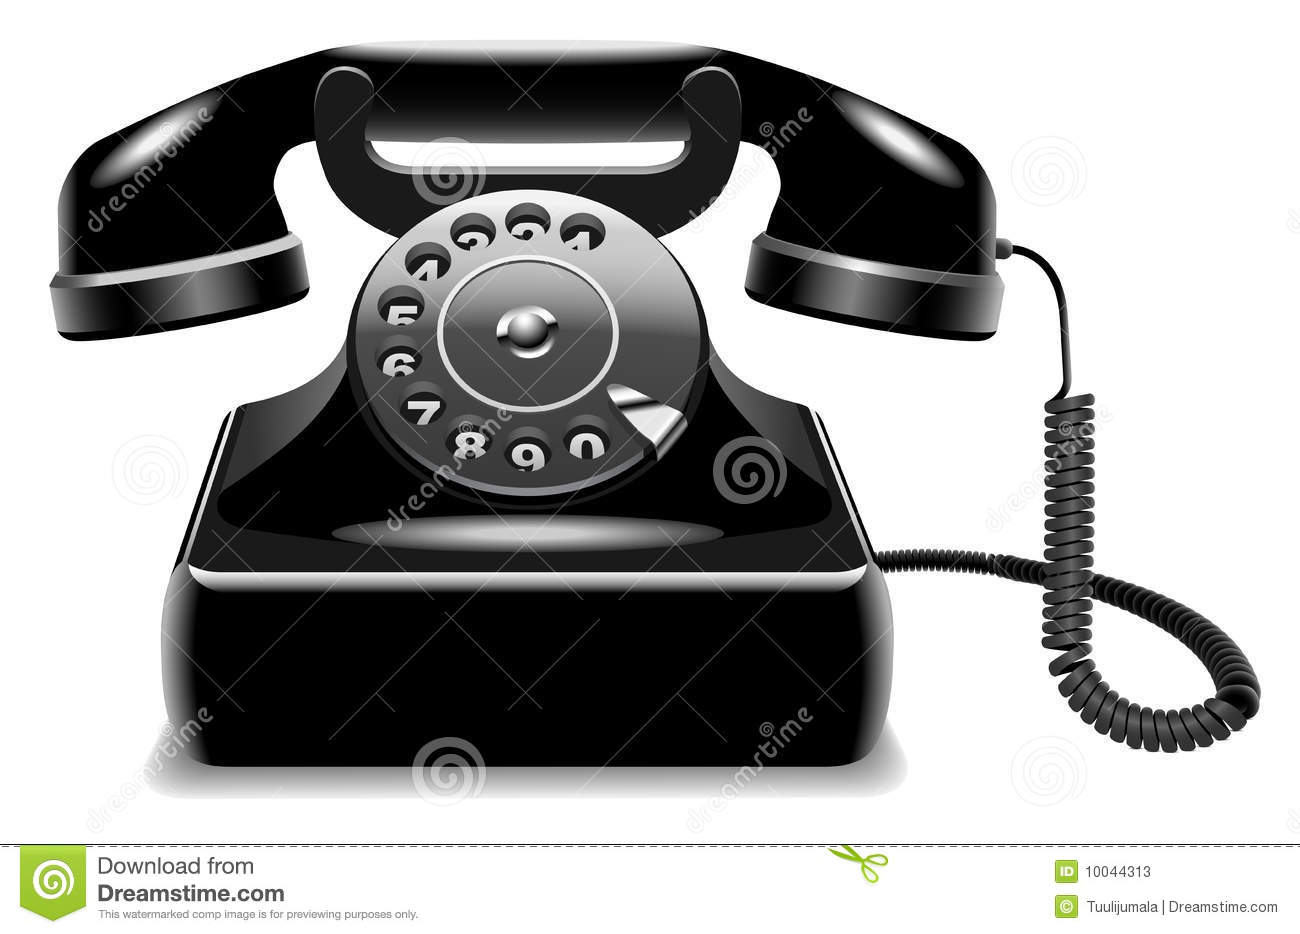 Outdated black telephone.